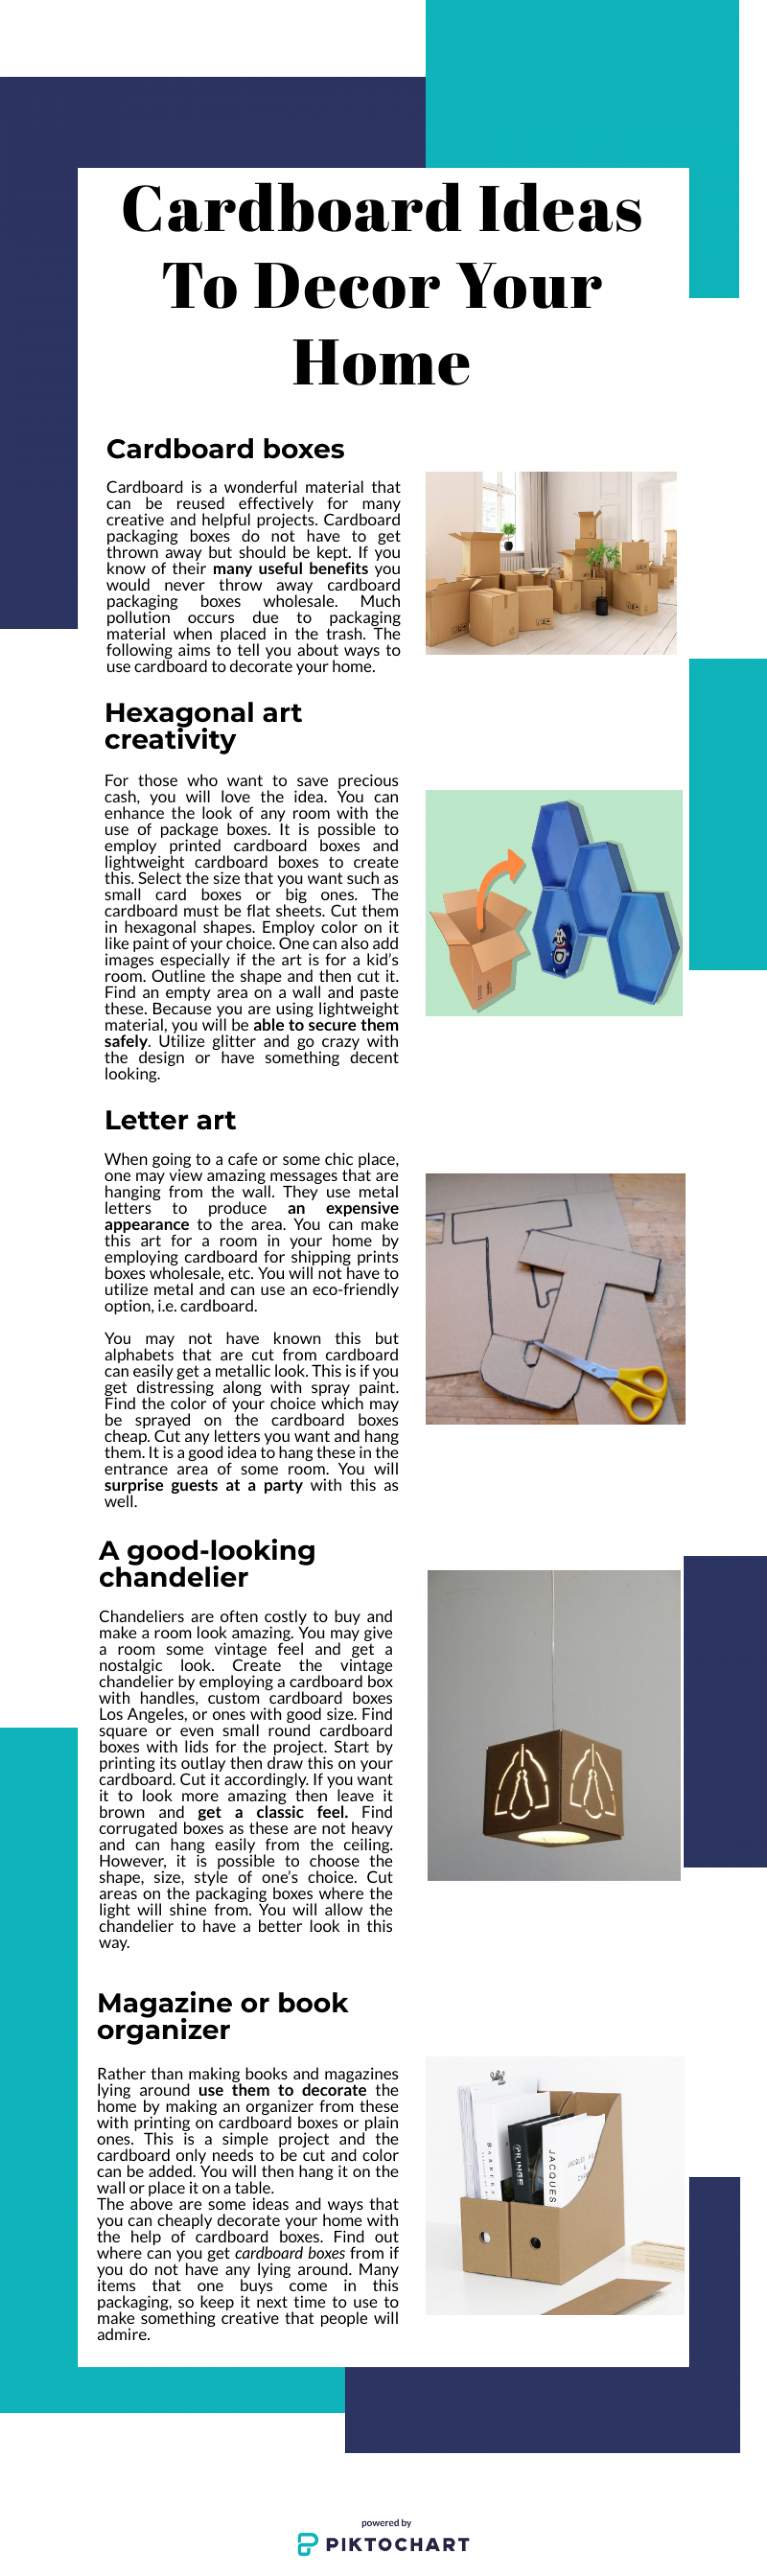 Cardboard Ideas To Decor Your Home Infographic